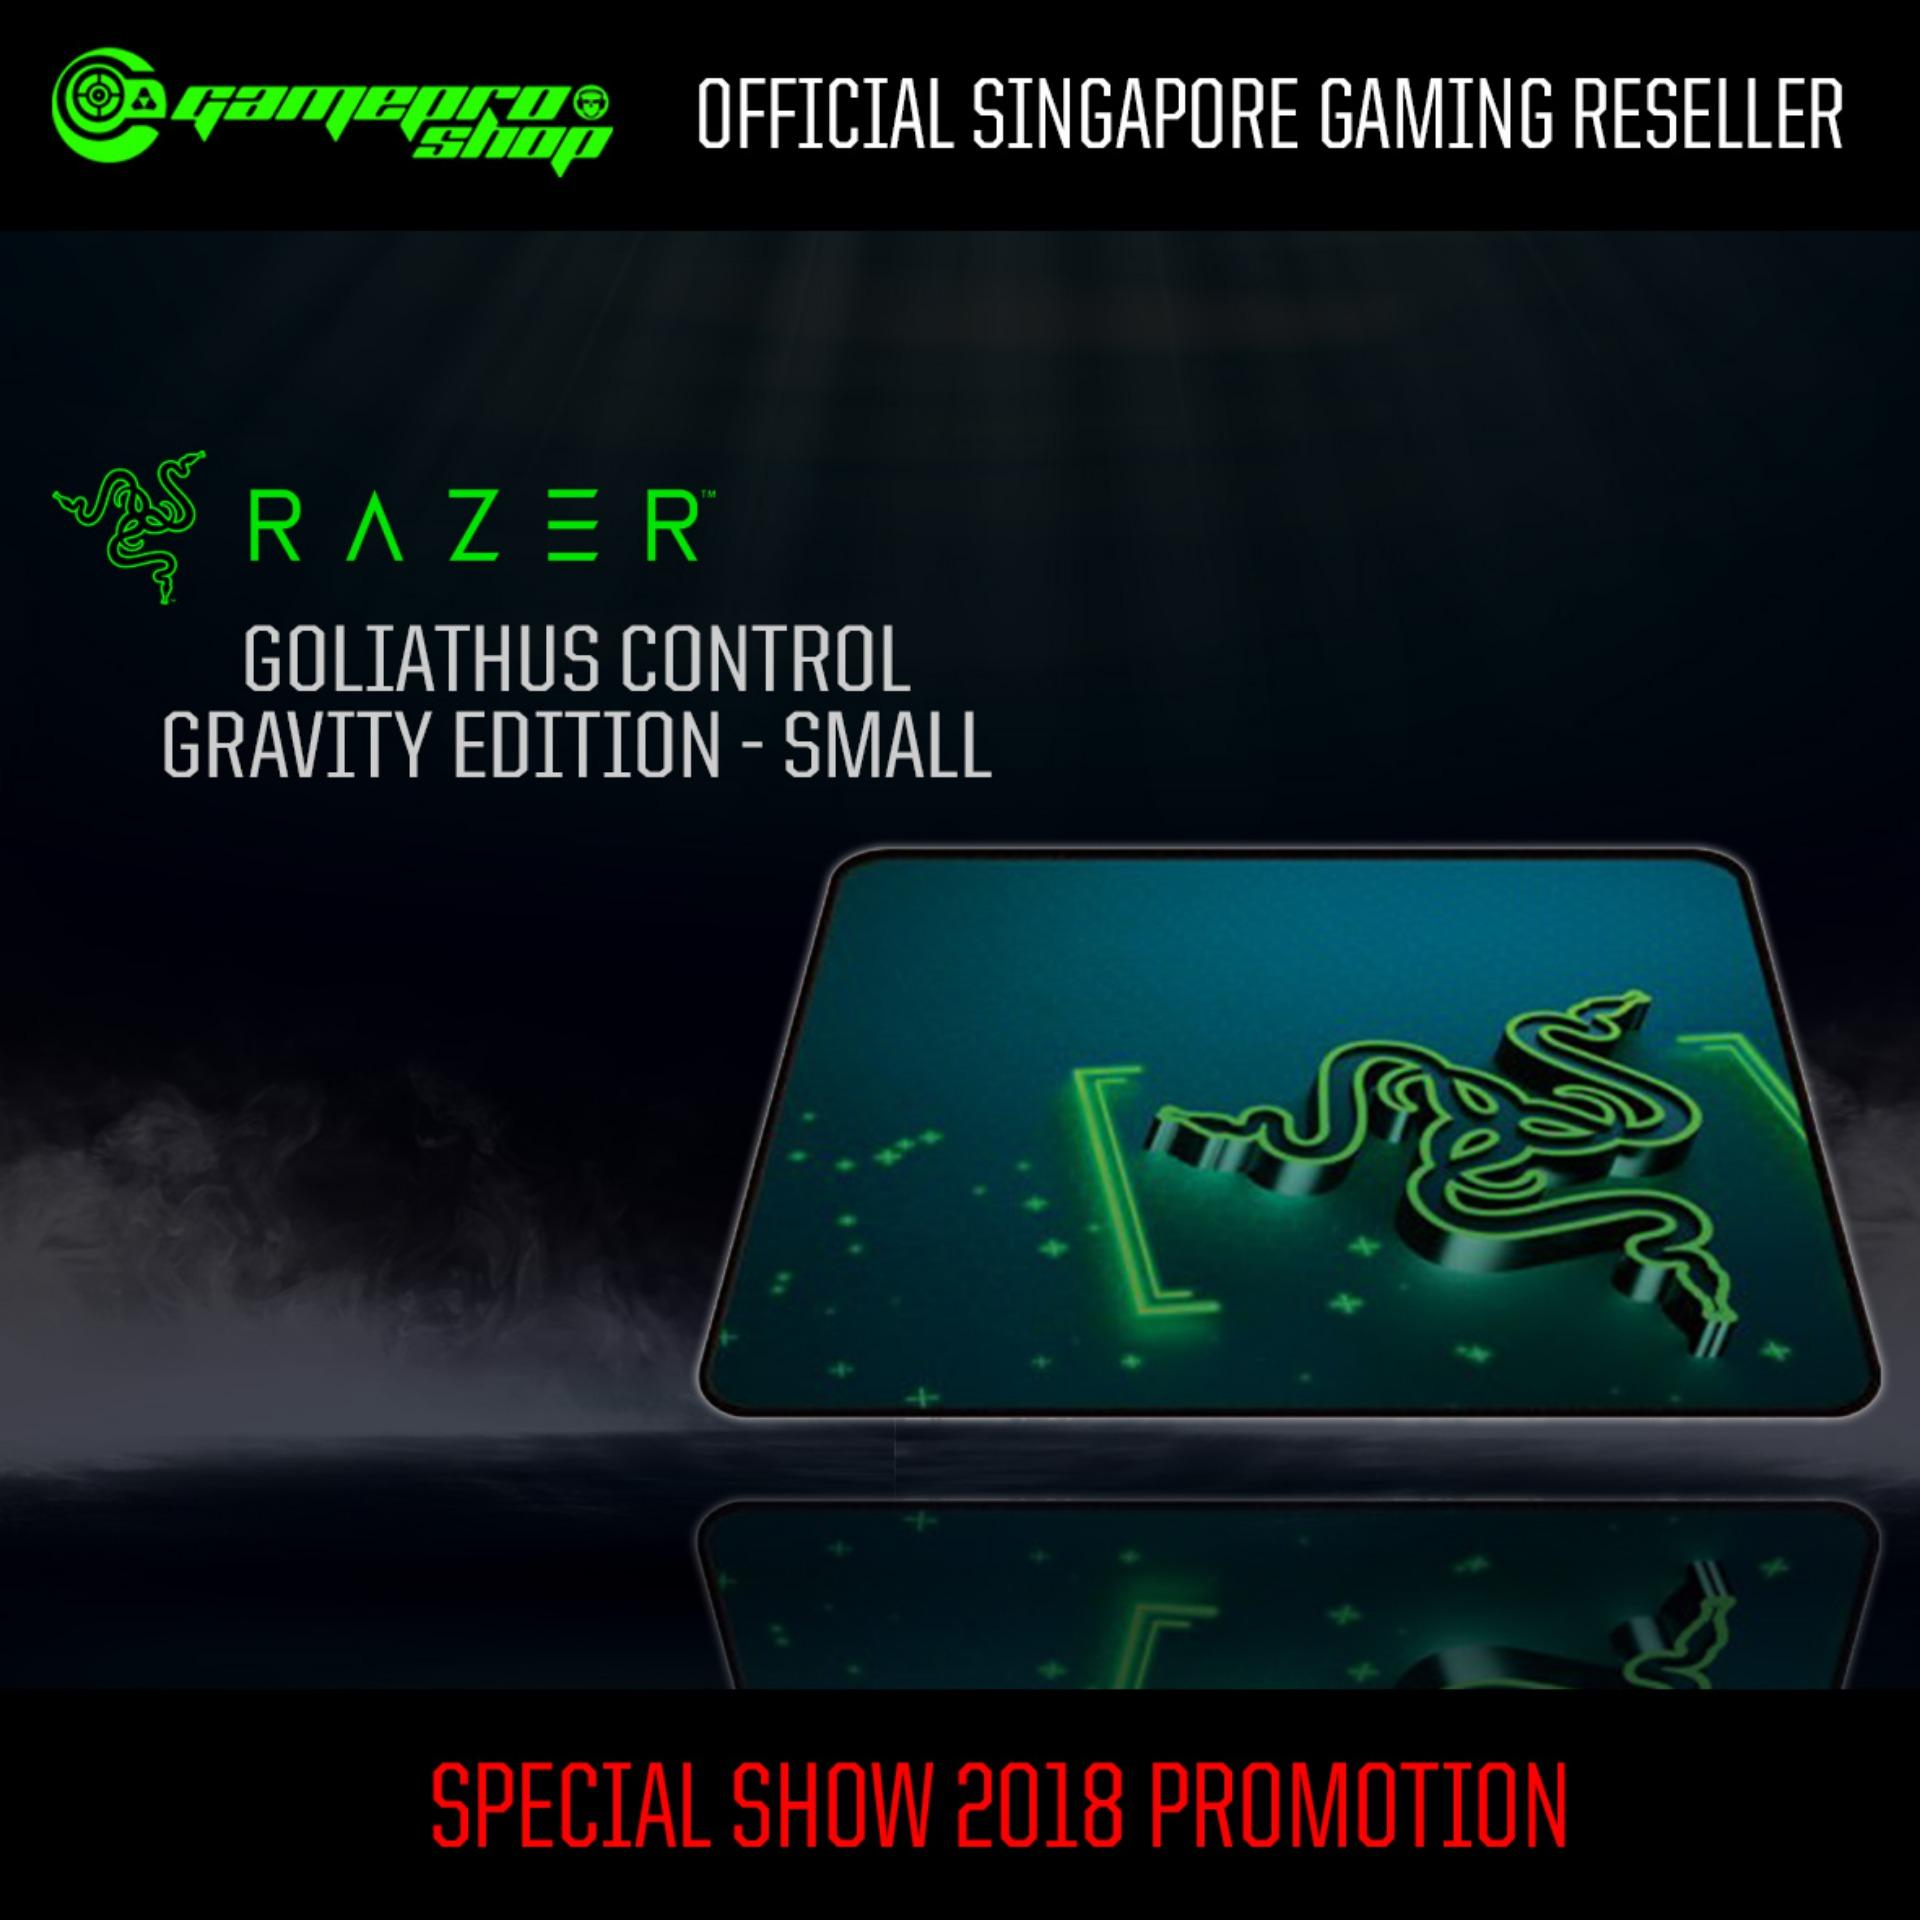 Razer Goliathus Control Gravity Edition Small Gss Promo Shop